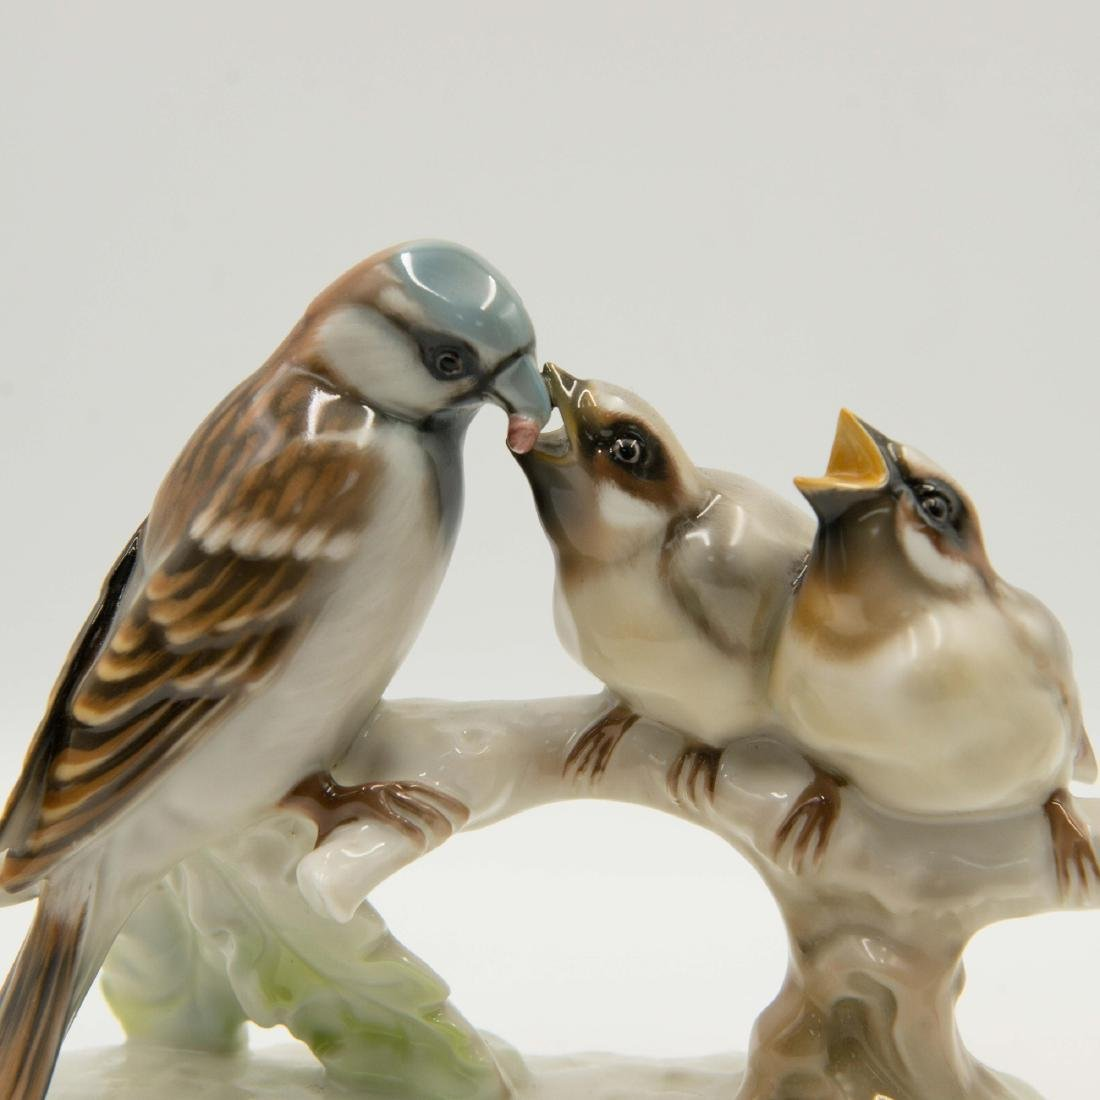 GROUP OF 2 HUTSCHENREUTHER BIRD FIGURINES - 4